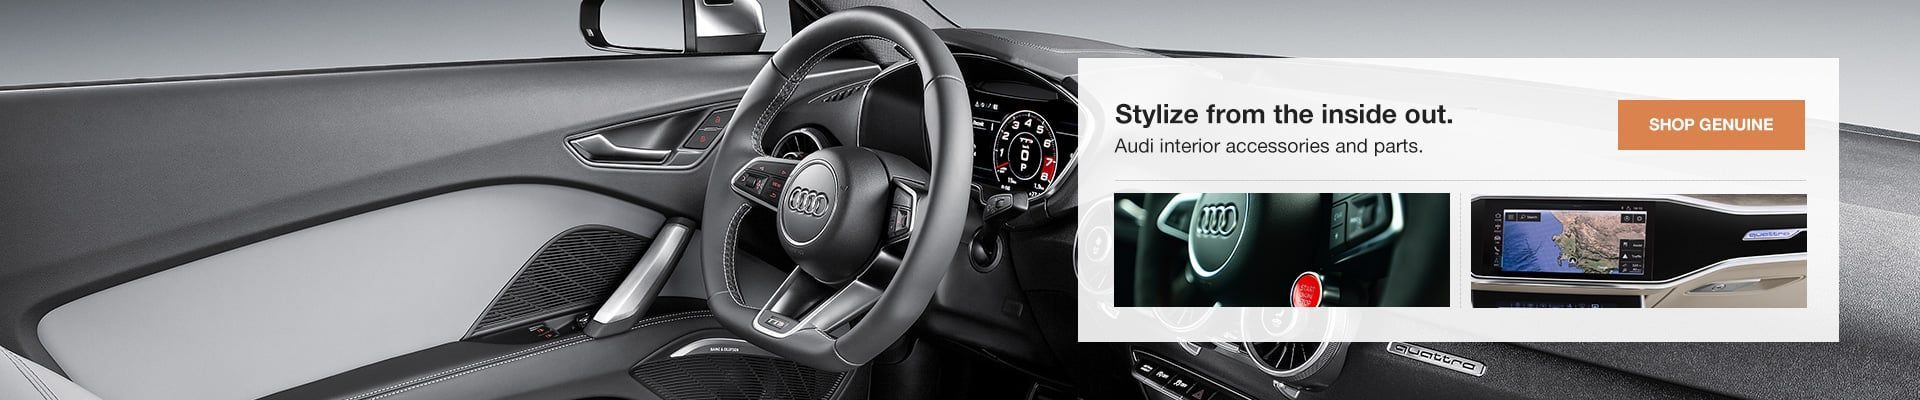 Audi Interior Accessories and Parts